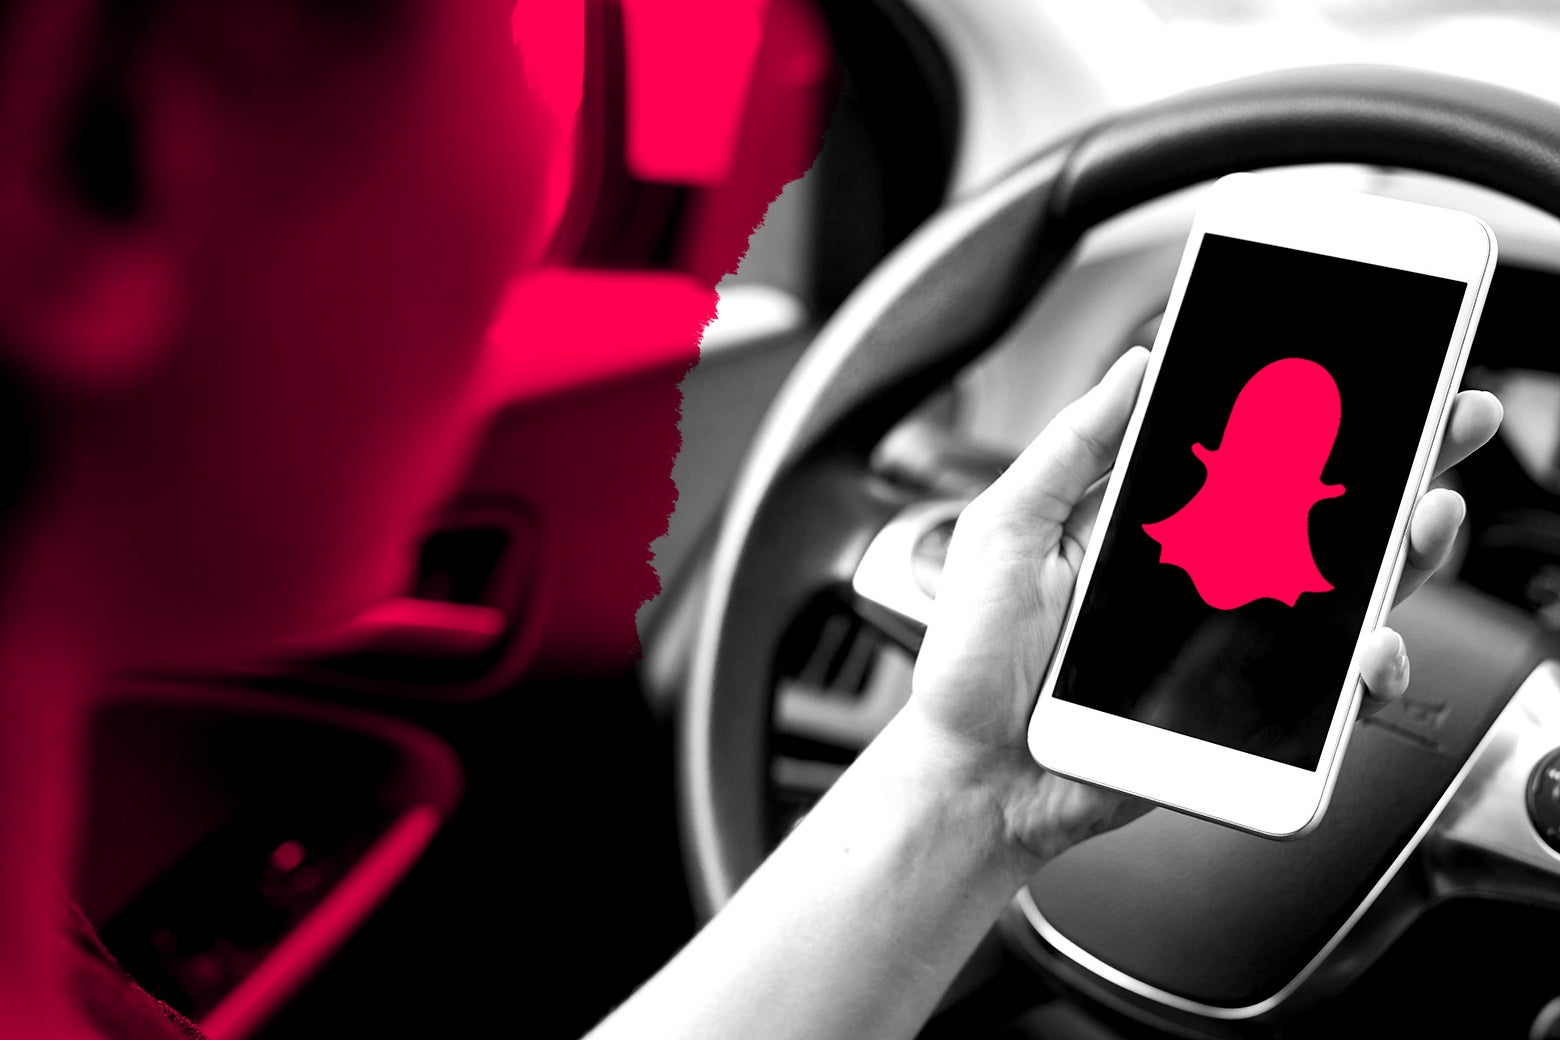 A woman driving and using Snapchat at the same time.